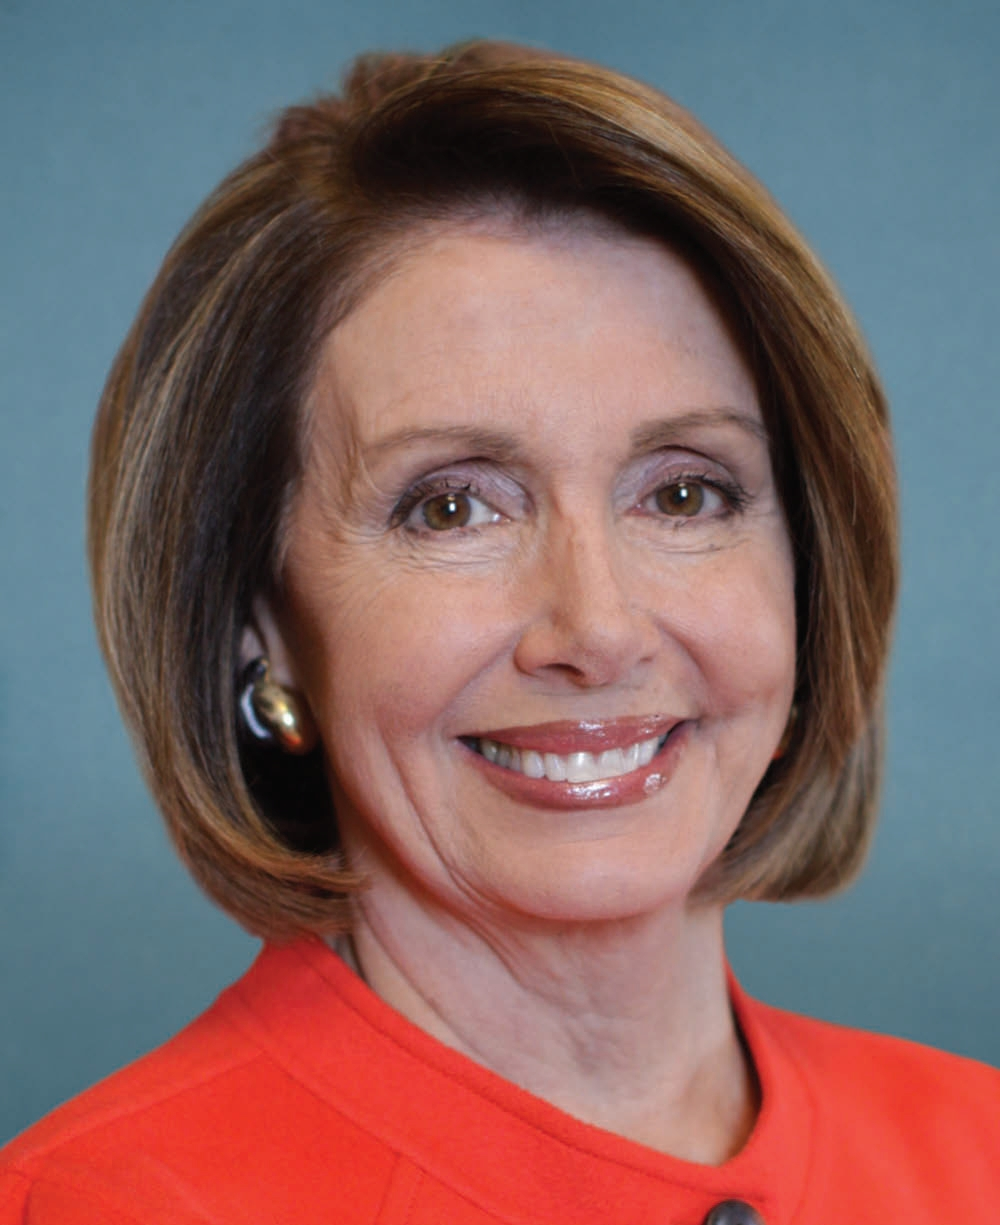 a pretty picutre of Pelosi